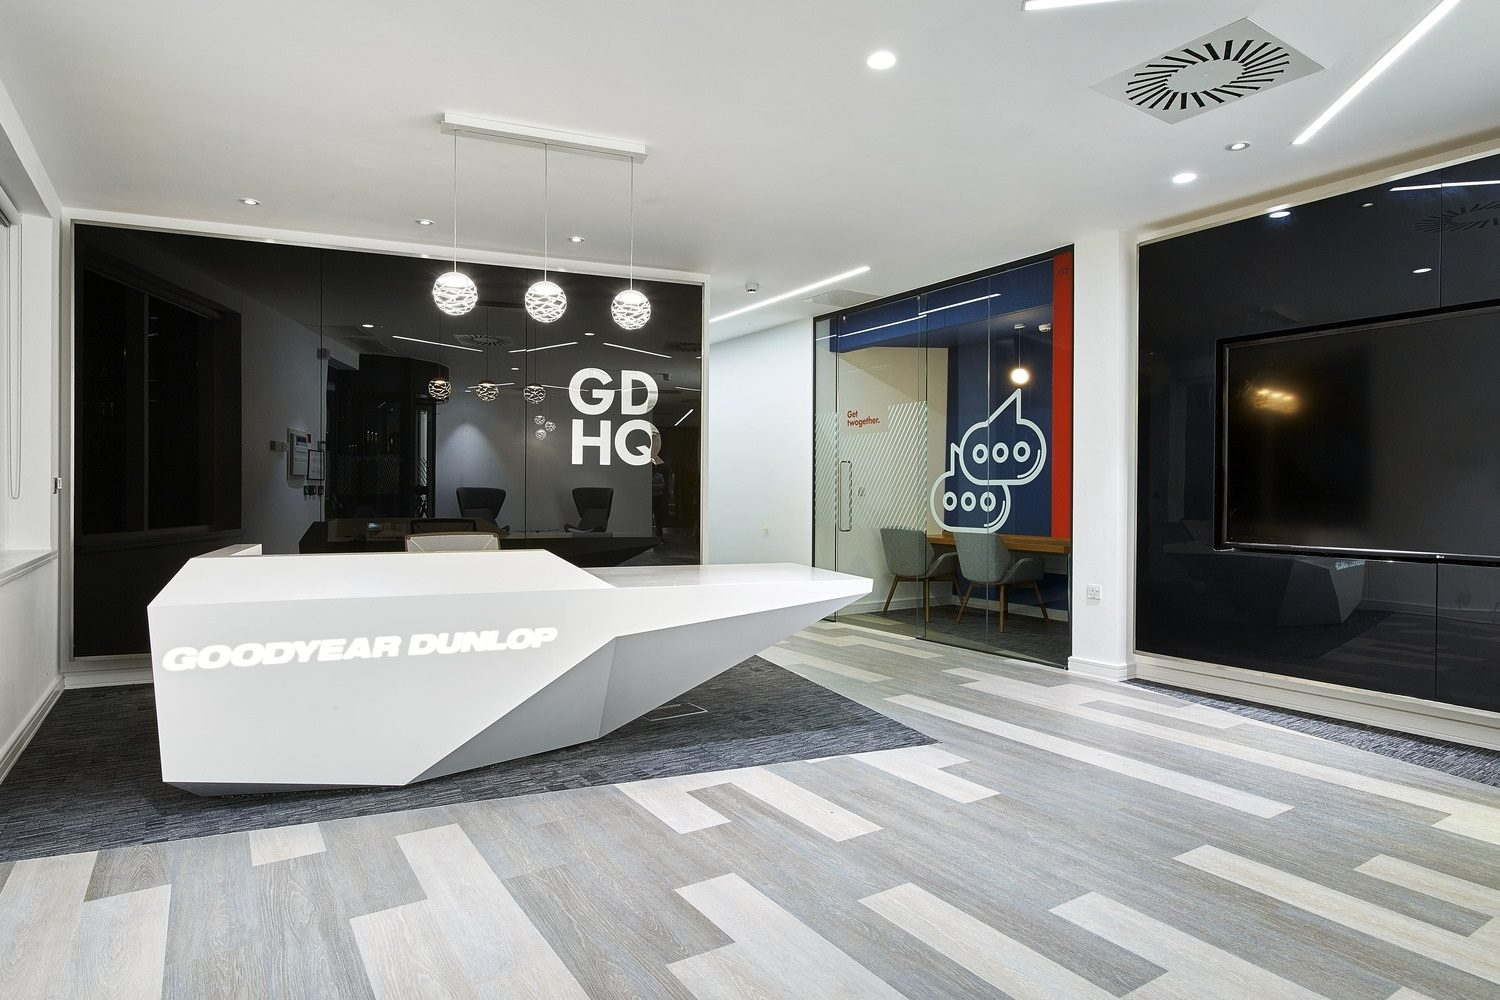 Goodyear Dunlop office design and build